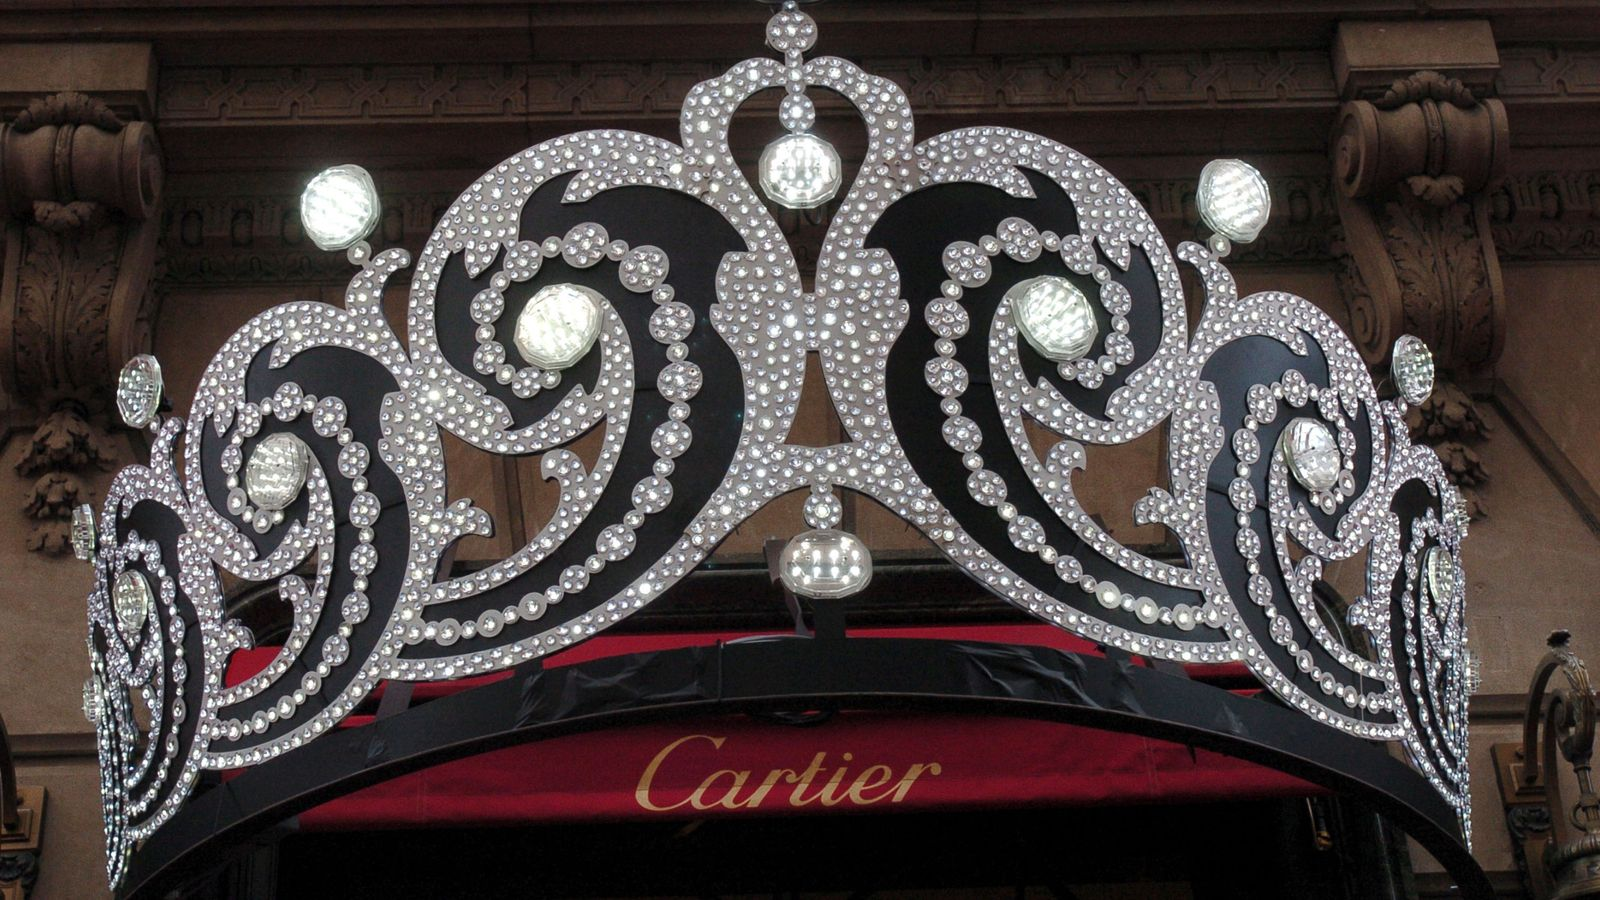 Suspected thieves in court over stolen £3.5m Cartier tiara worn to Edward VII's coronation